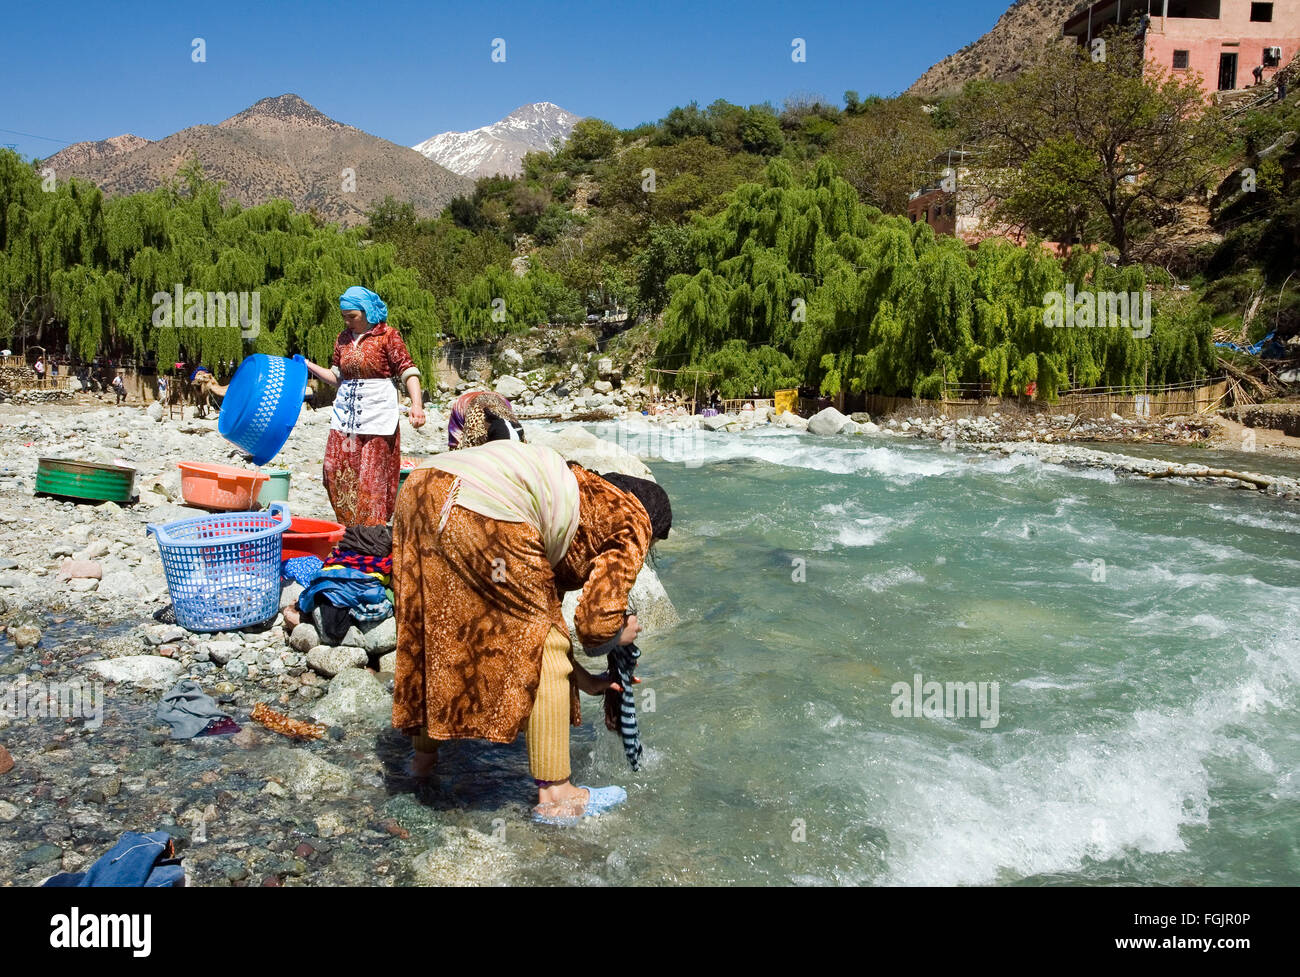 Washing day at the village of Setti Fatma, springtime in the Ourika Valley, Morocco near Marrakech - Stock Image